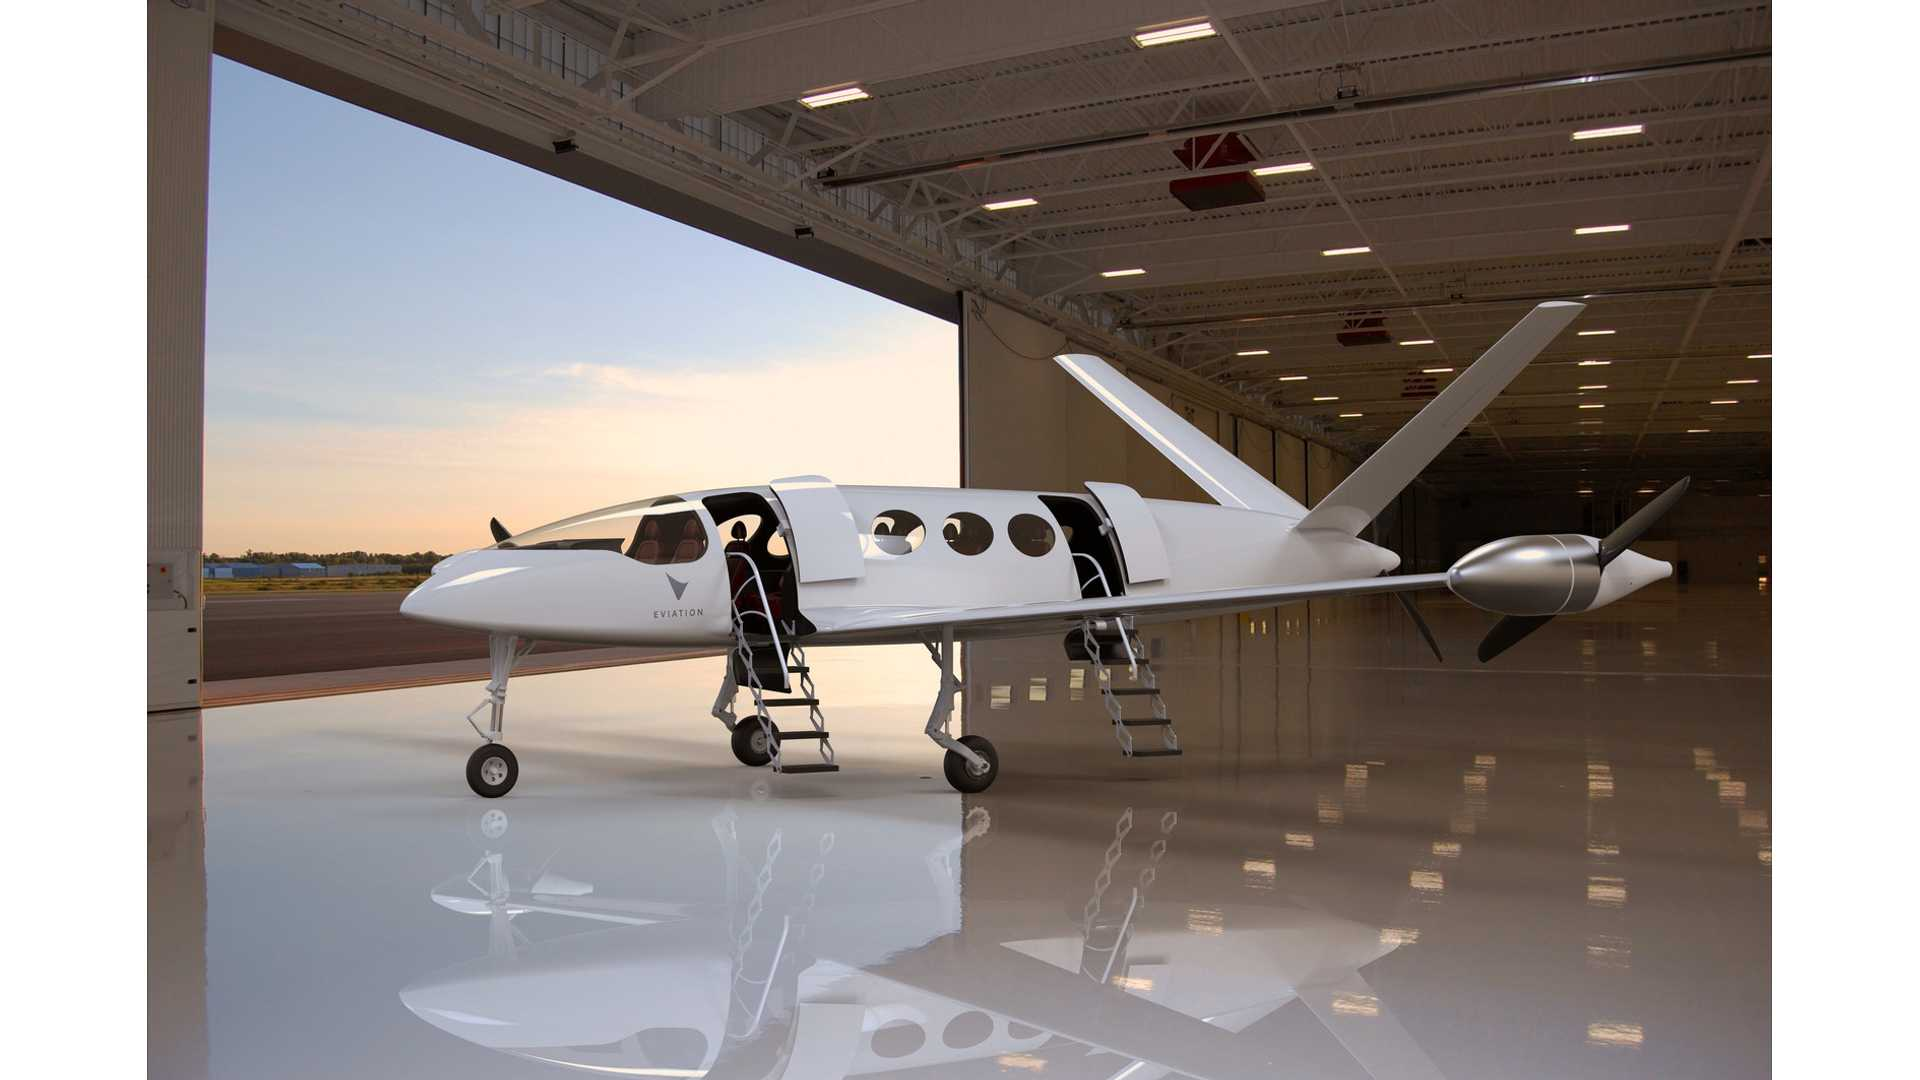 This Electric Aircraft Features A 900-kWh Battery, 650-Mile Range